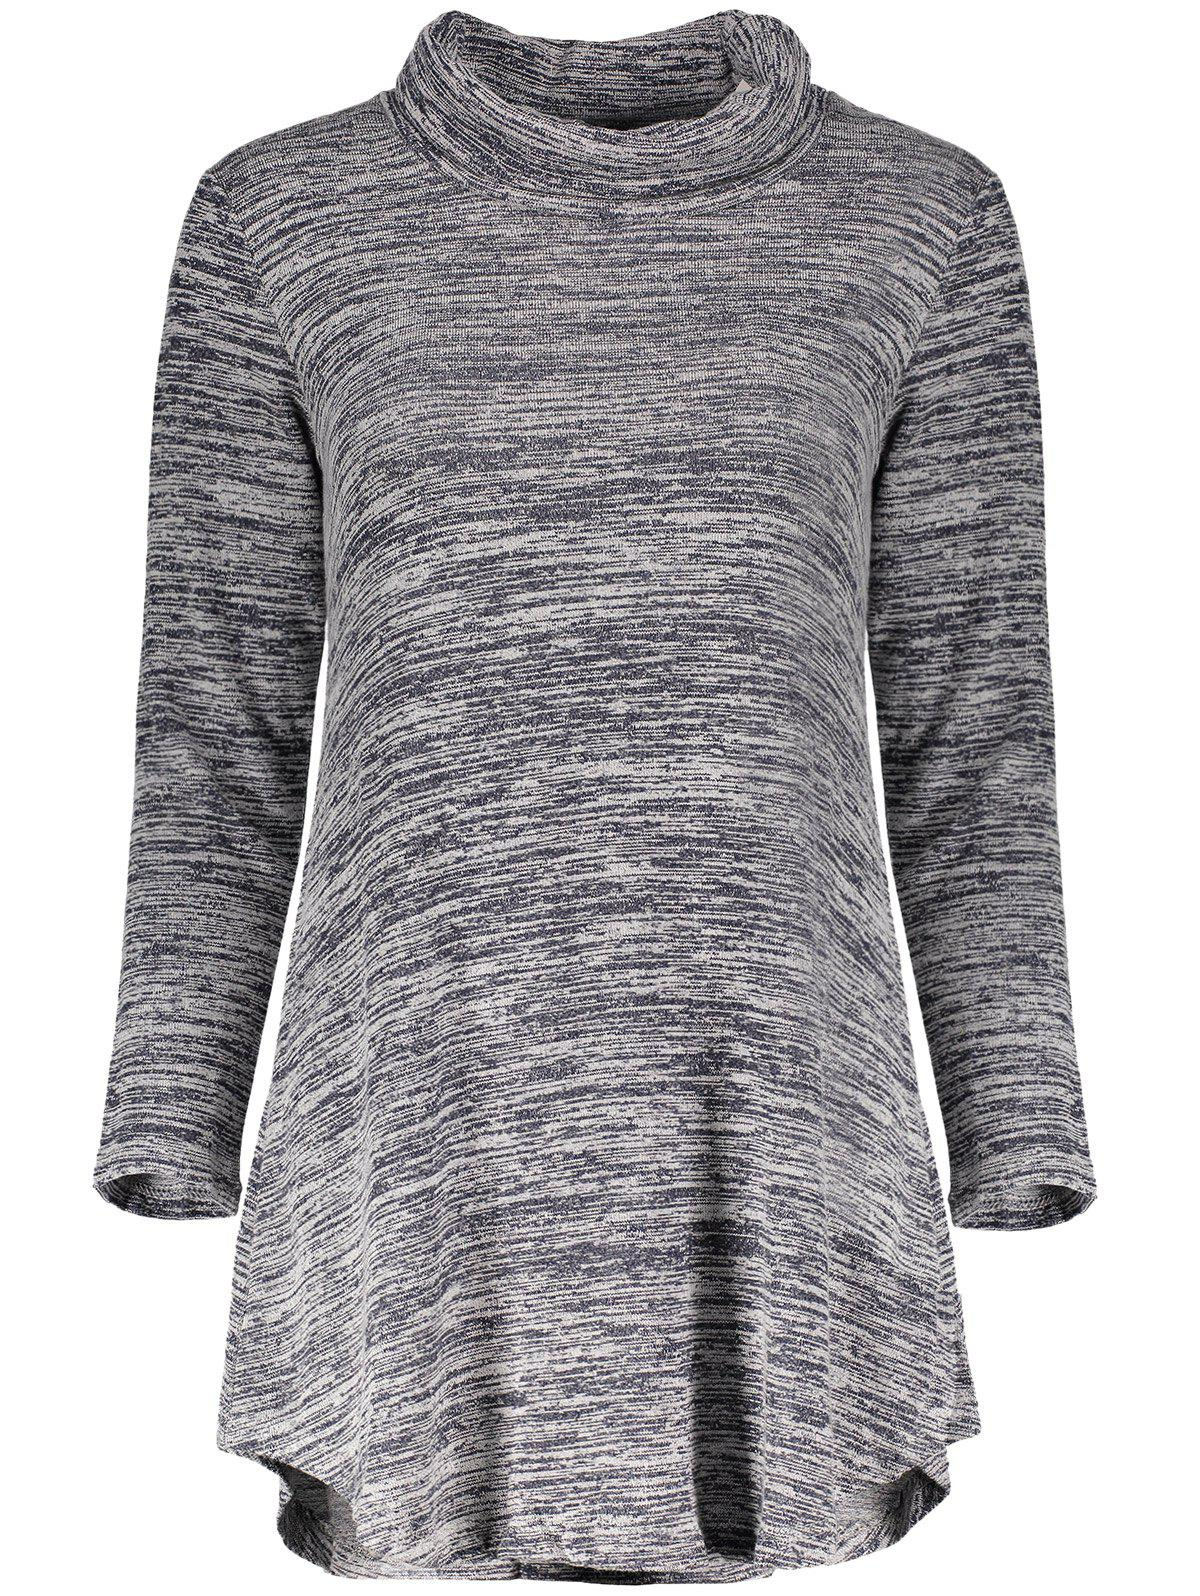 Chic Long Sleeve Cowl Neck Asymmetrical Women's Knitted Dress - GRAY XL